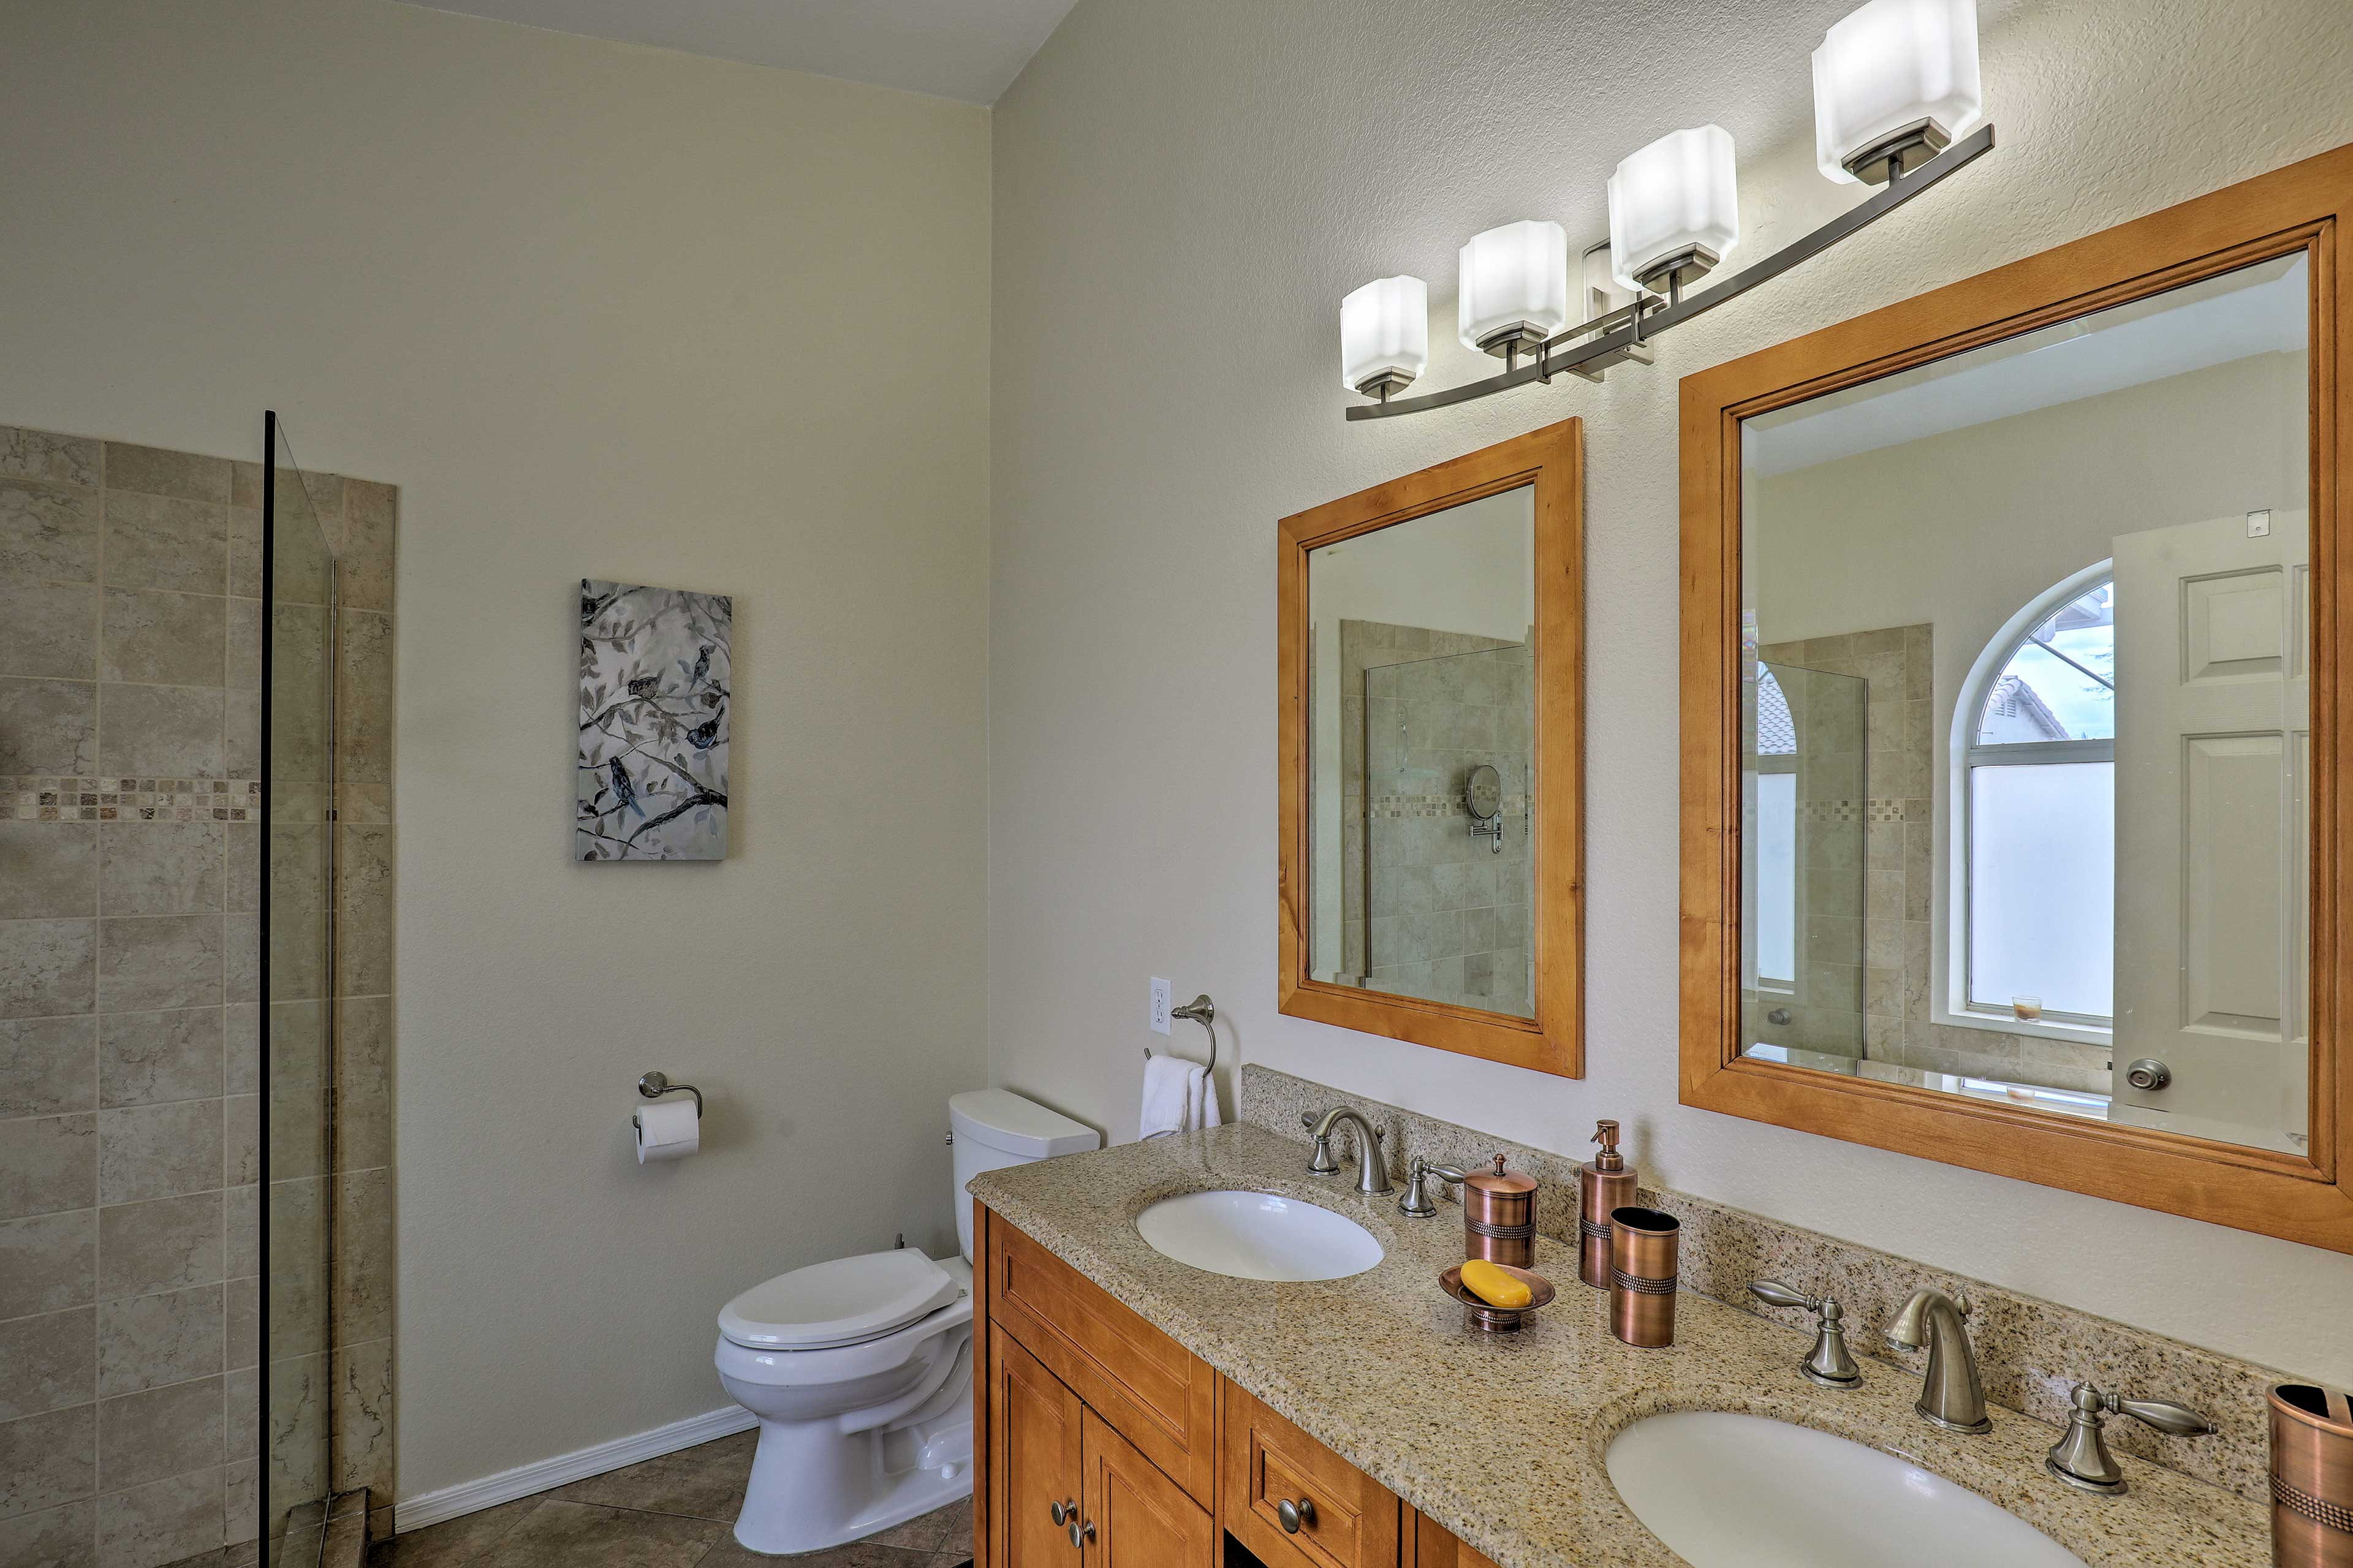 His-and-hers sinks allow you and a companion to get ready at the same time.